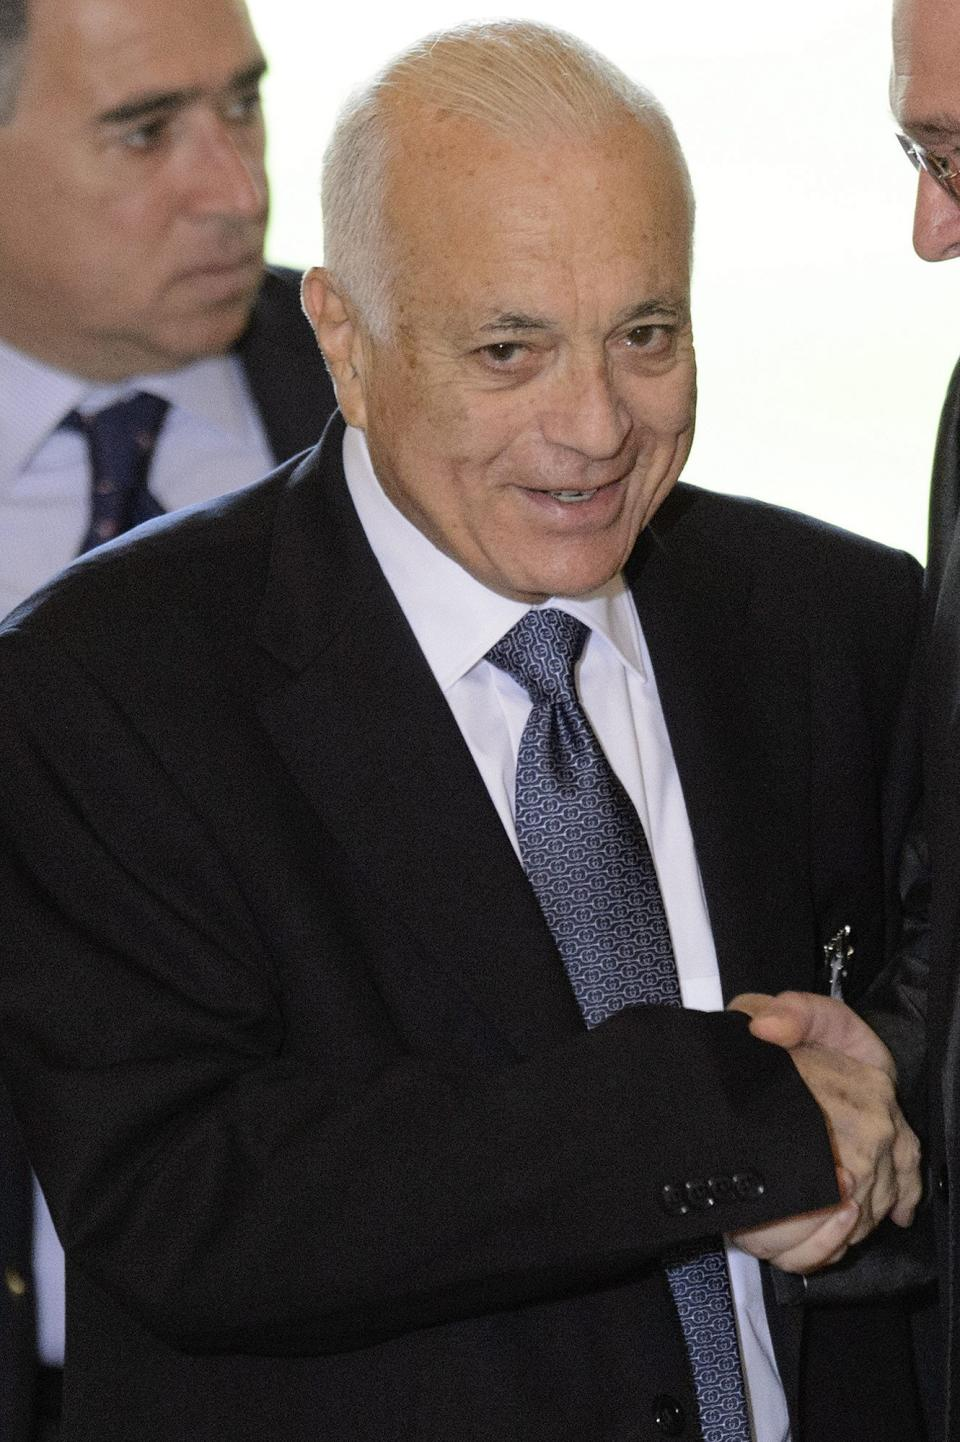 The Secretary General of the Arab League, Nabil al-Araby arrives for a meeting of the Action Group for Syria at the European headquarters of the United Nations,  in Geneva, Switzerland, Saturday, June 30, 2012. (AP Photo/Keystone, Laurent Gillieron)